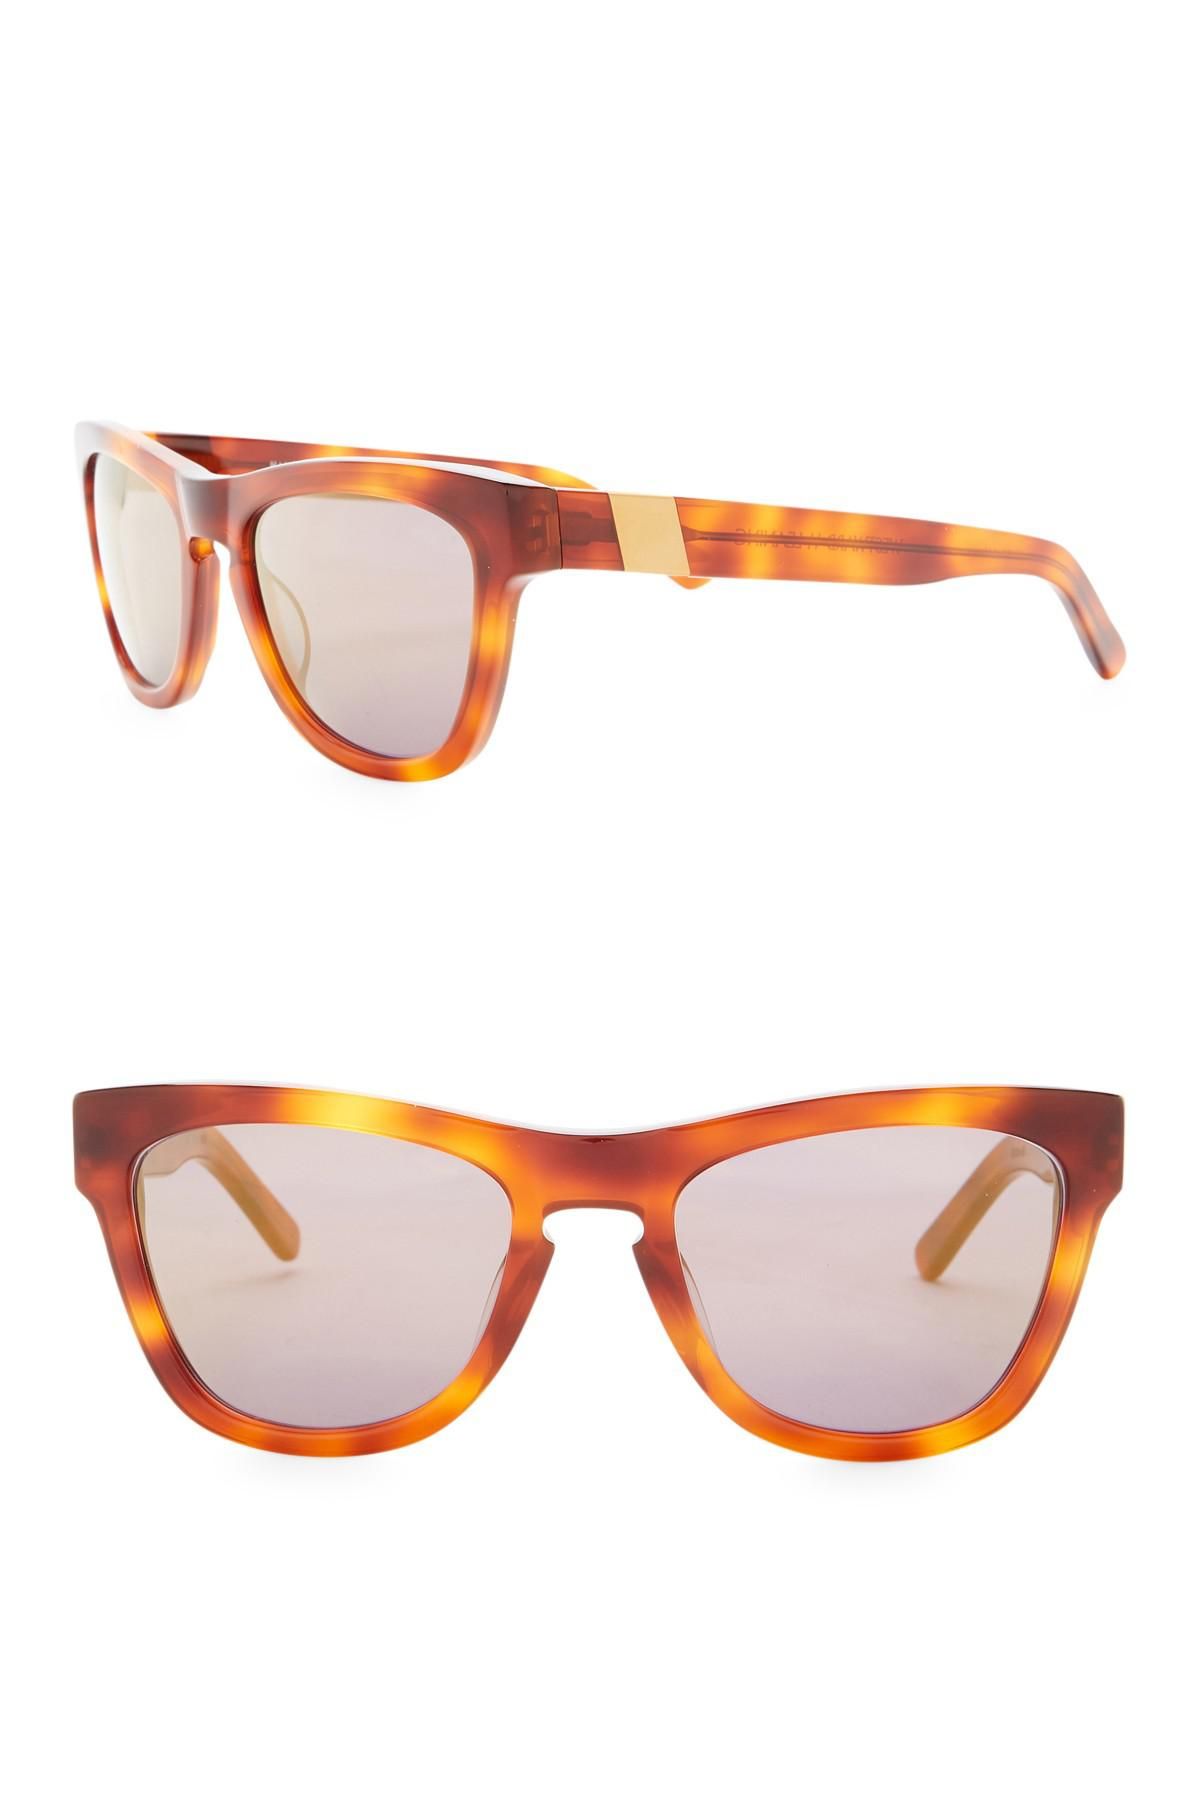 0edb9fe231 Gallery. Previously sold at  Nordstrom Rack · Women s Oversized Square  Sunglasses ...